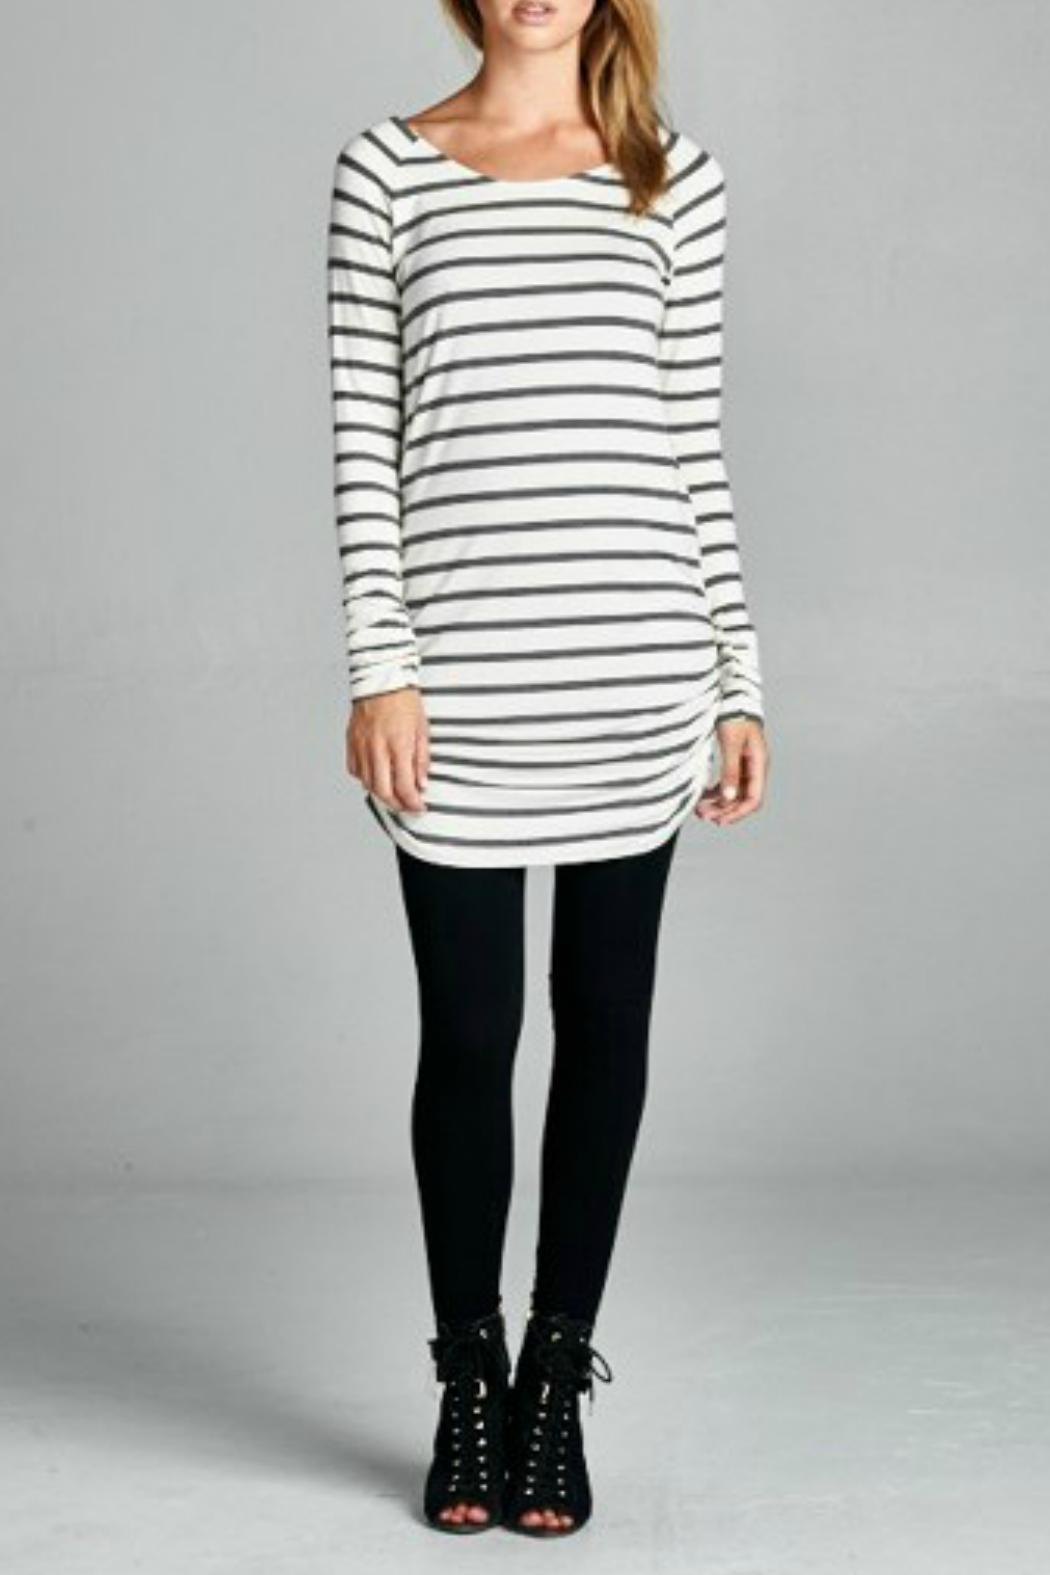 Inance Striped Tunic Top from Florida — Shoptiques